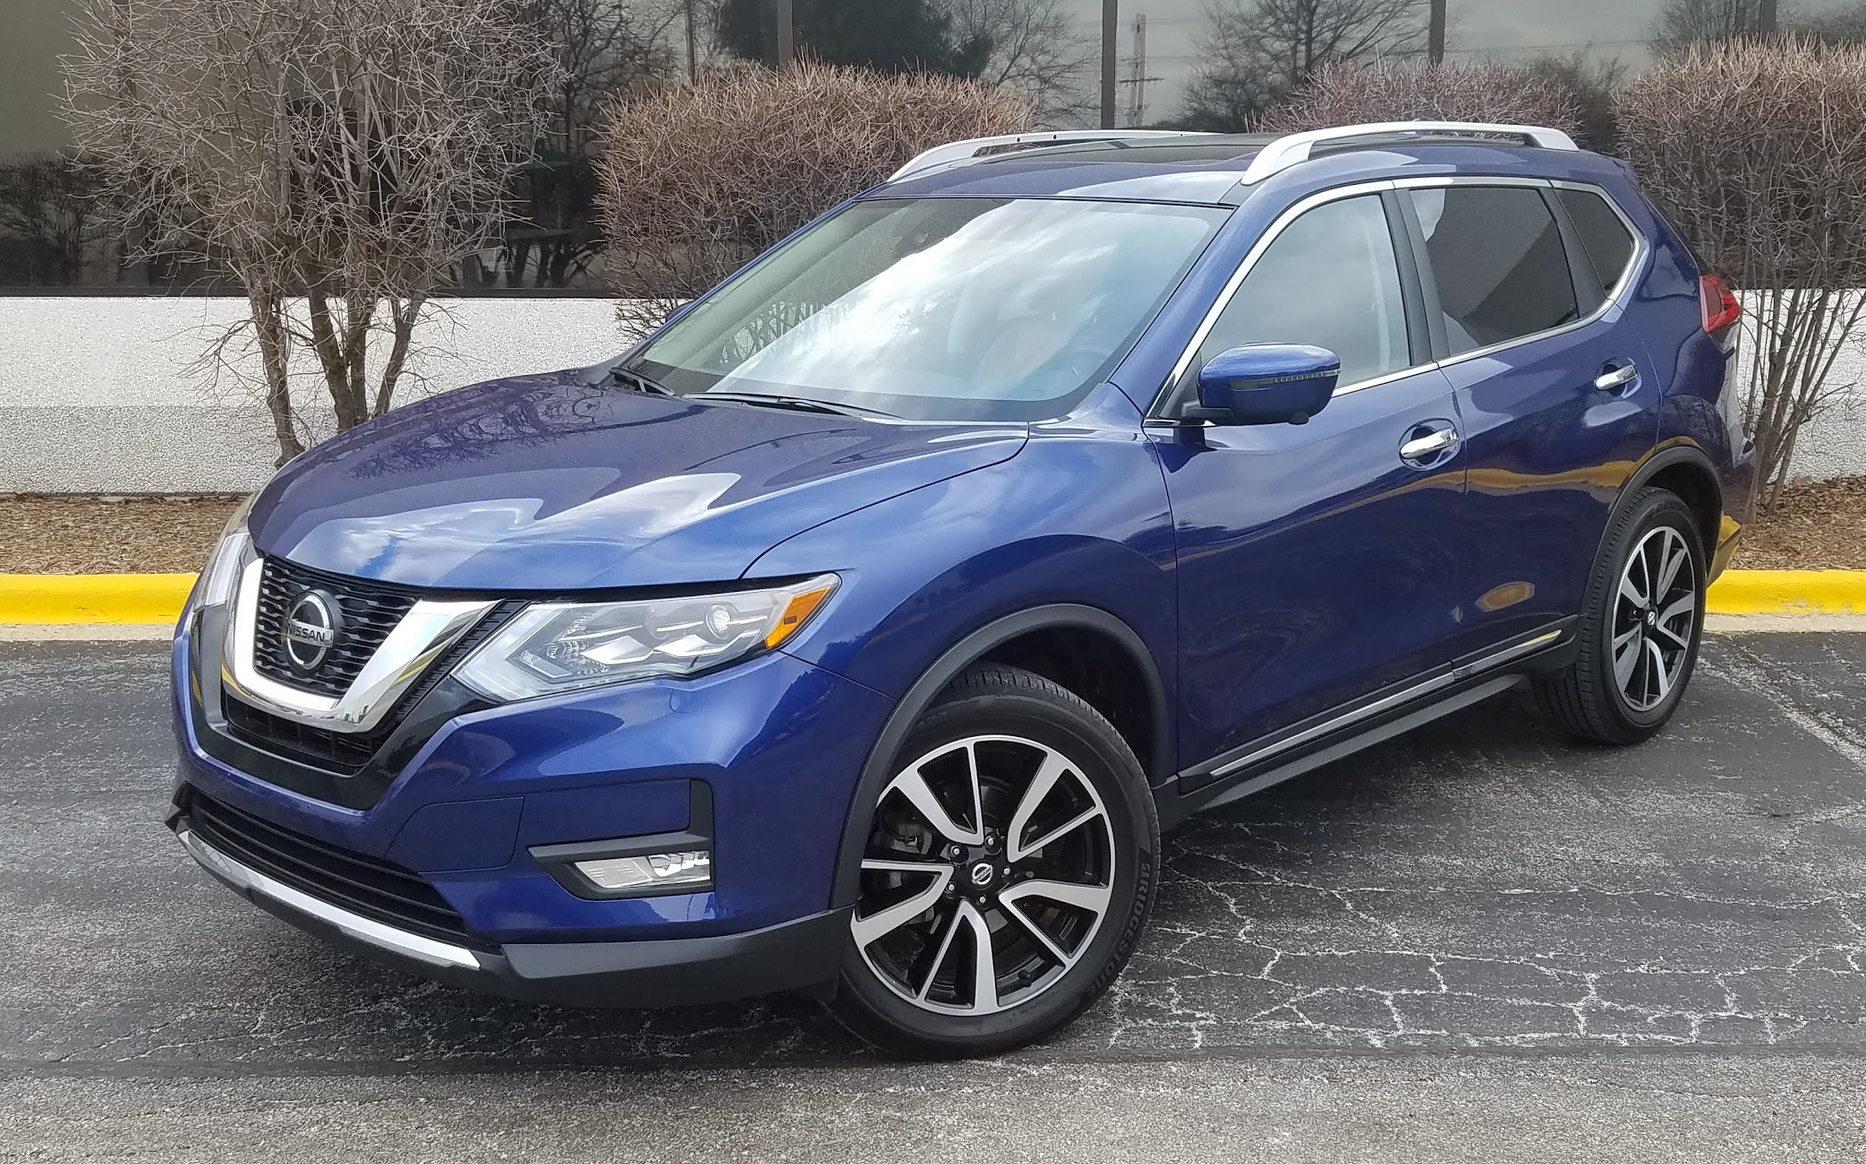 Test Drive 2018 Nissan Rogue Sl The Daily Drive Consumer Guide The Daily Drive Consumer Guide